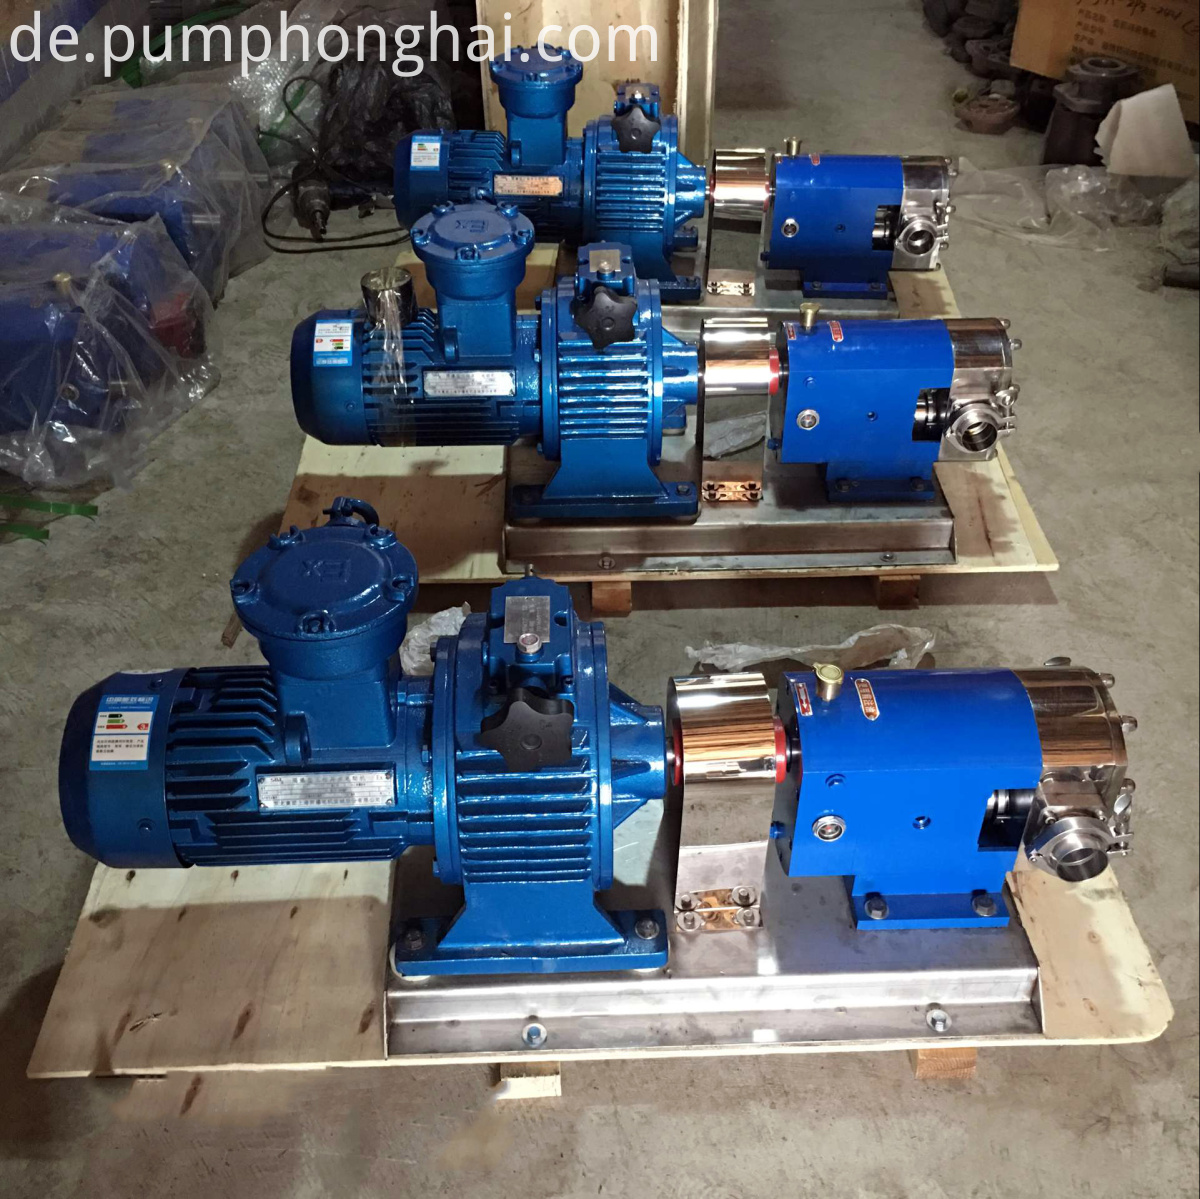 3RP stainless steel pump